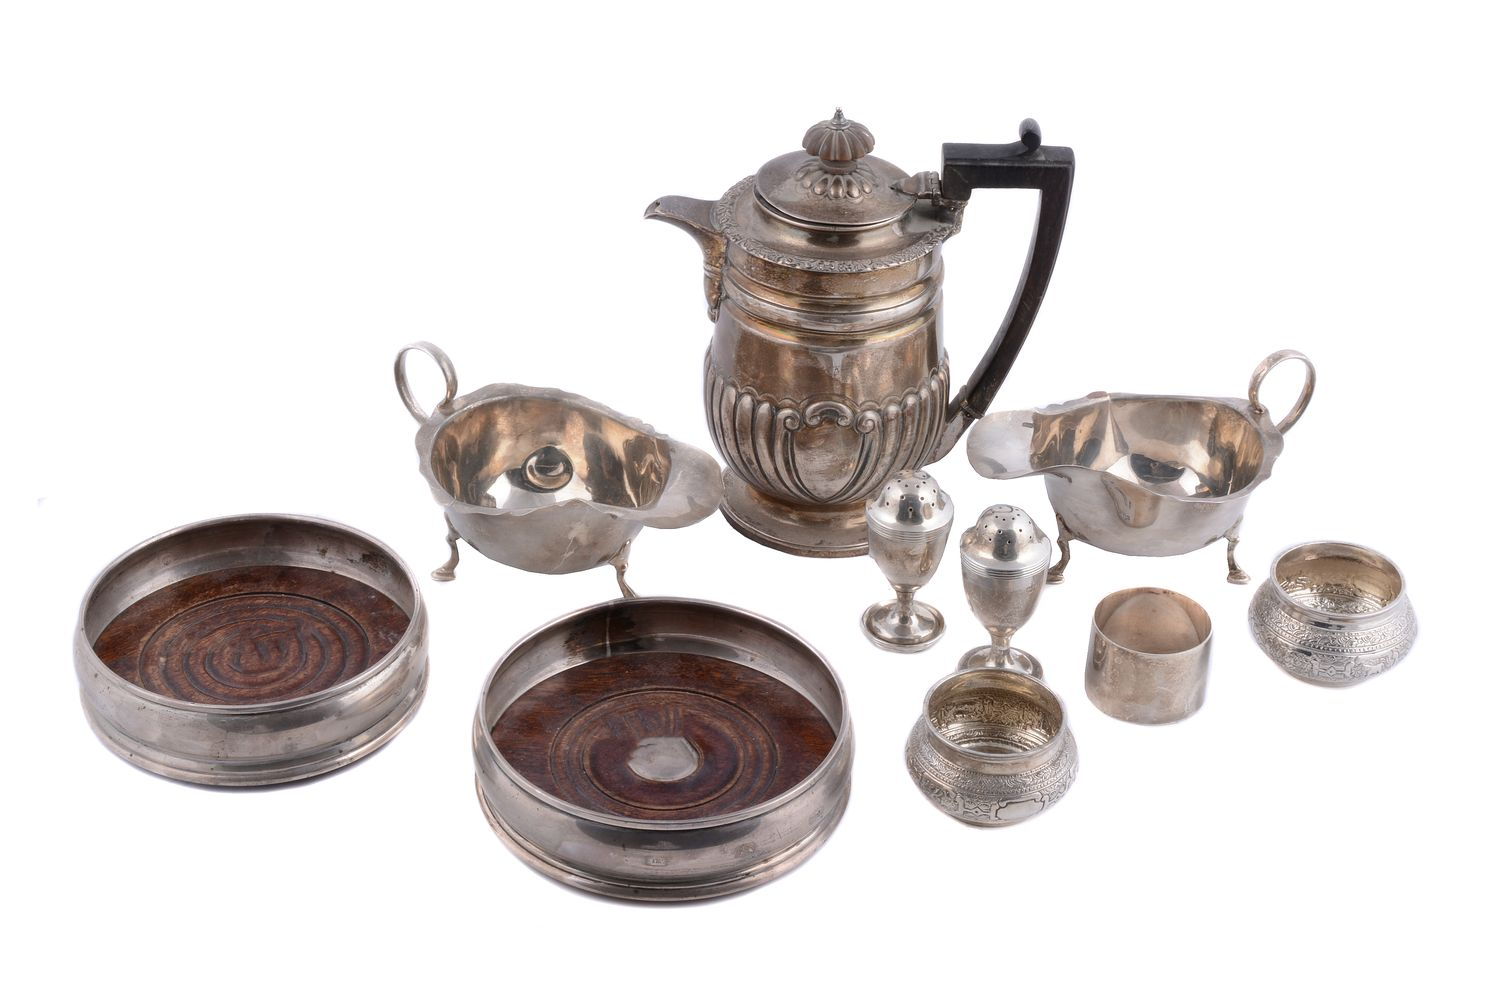 Lot 677 - A collection of silver